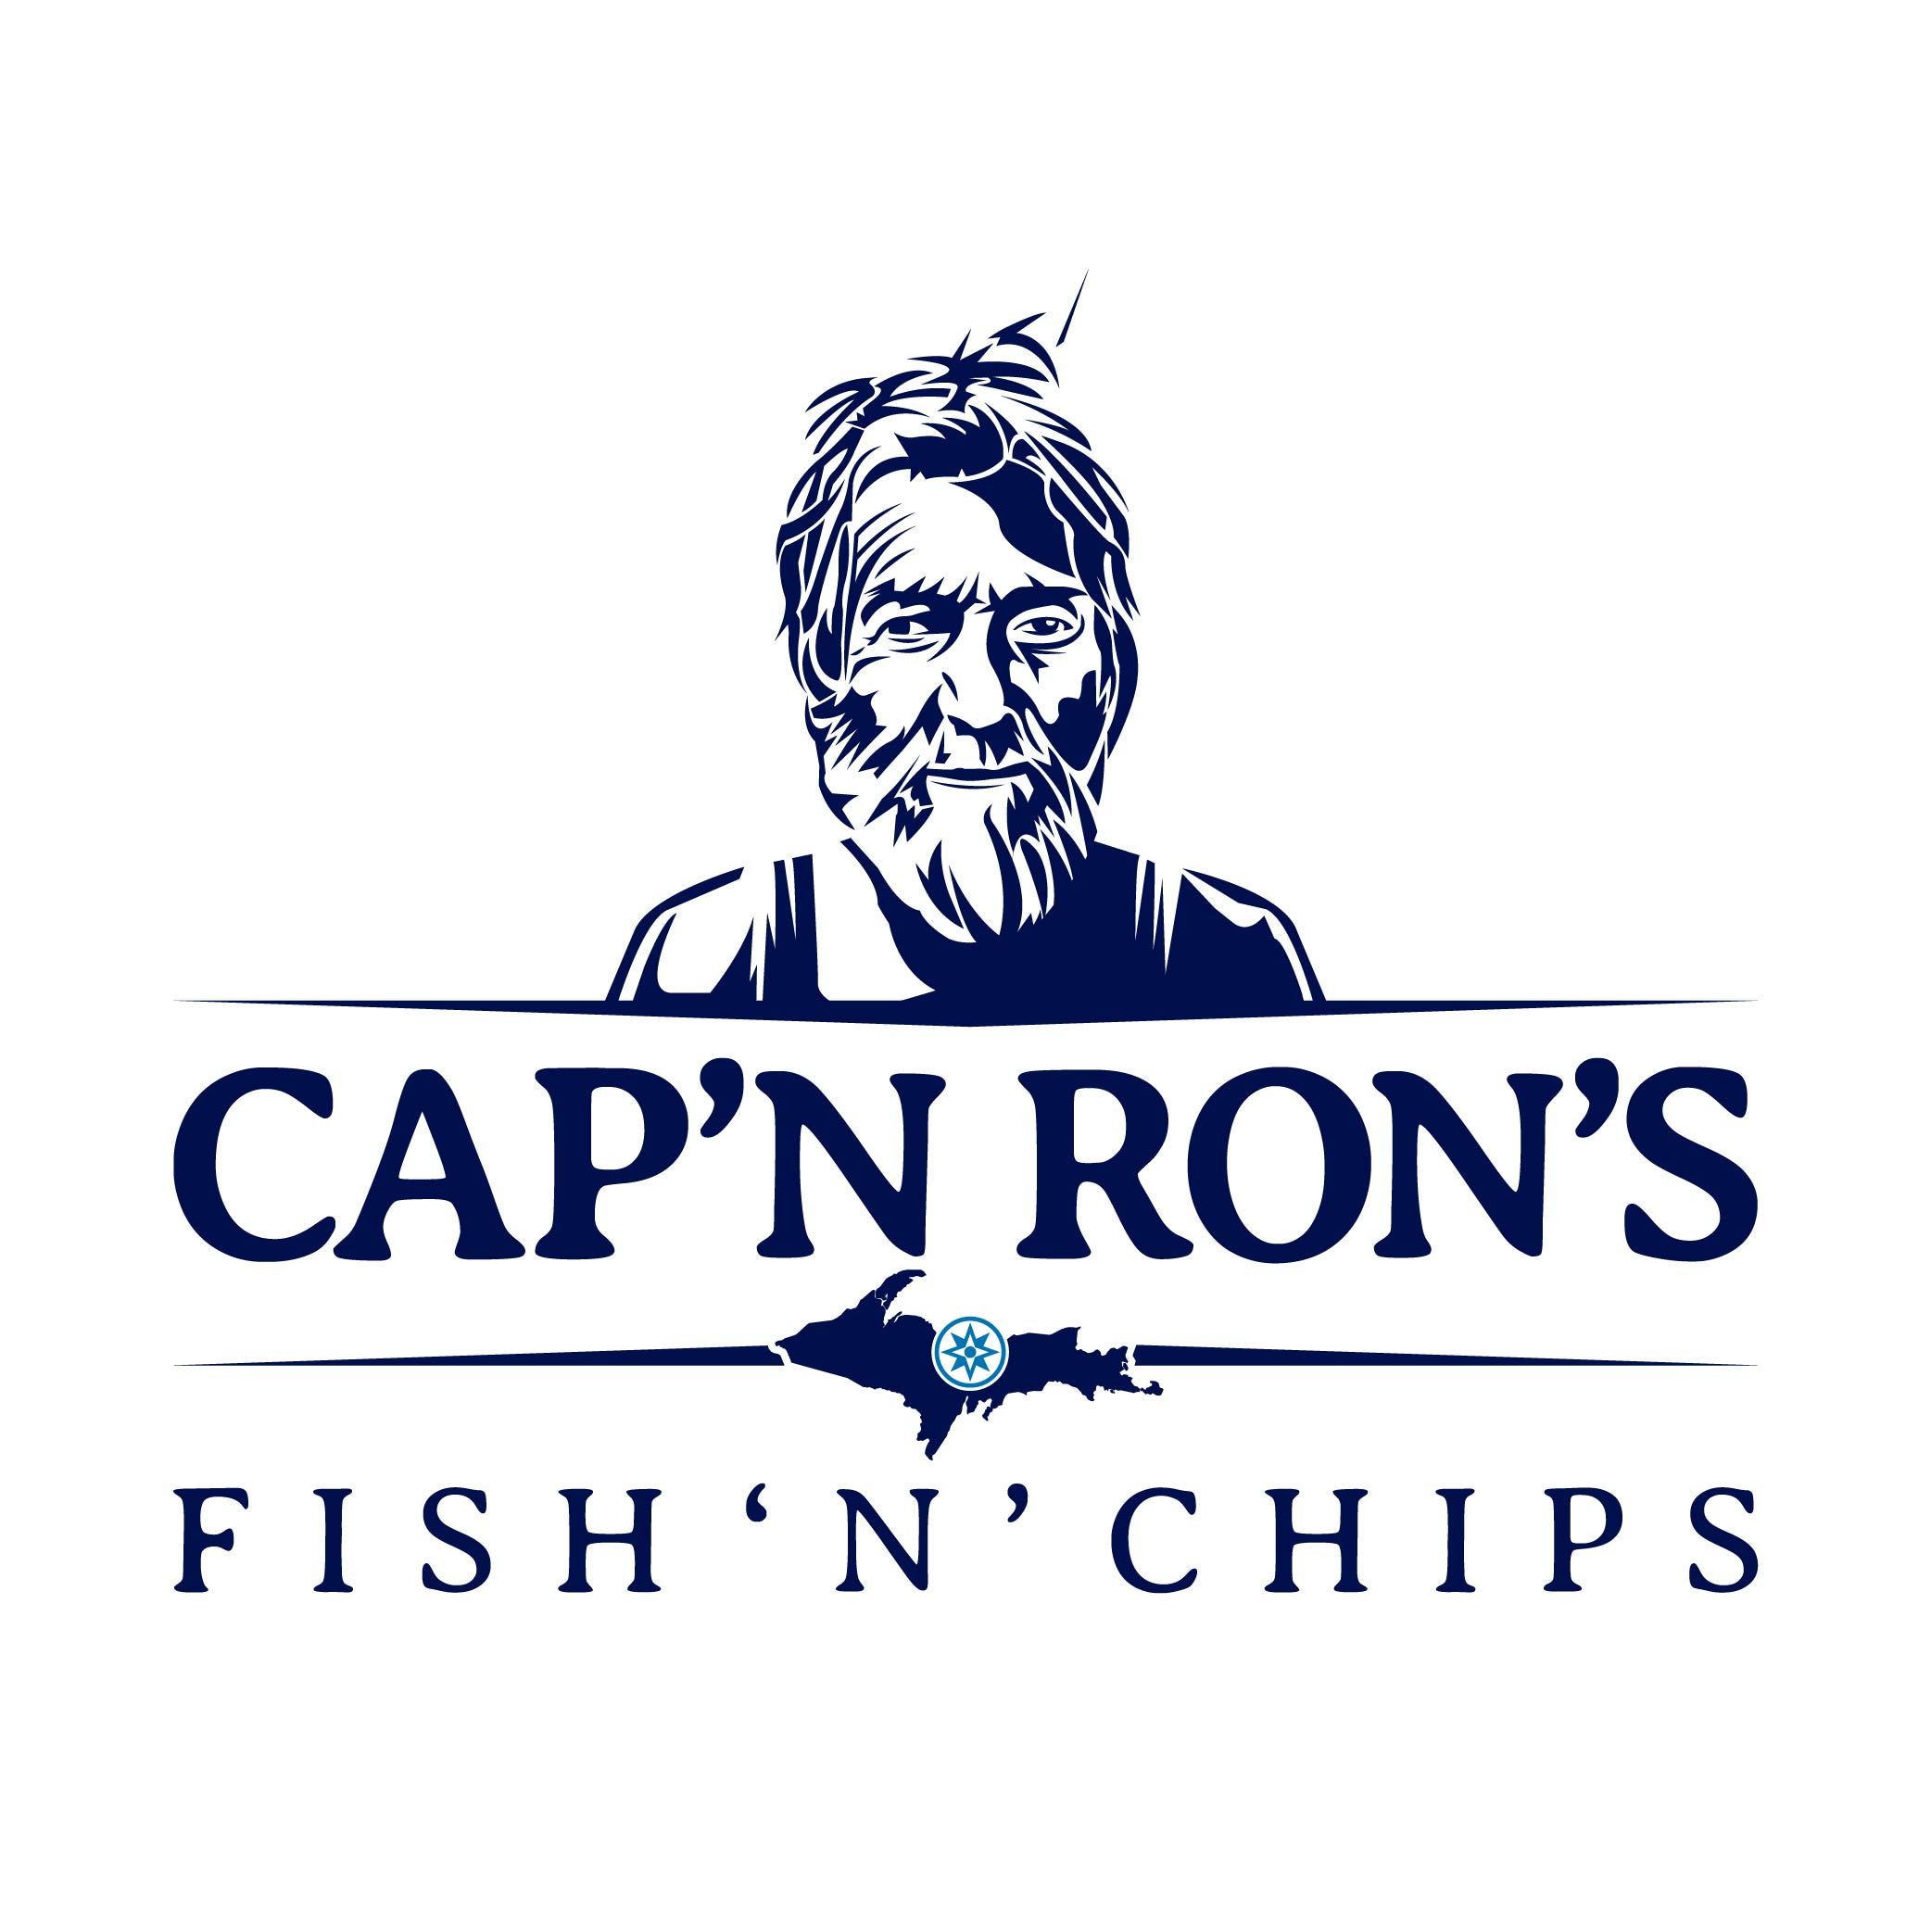 Cap'N Ron's Fish 'N' Chips